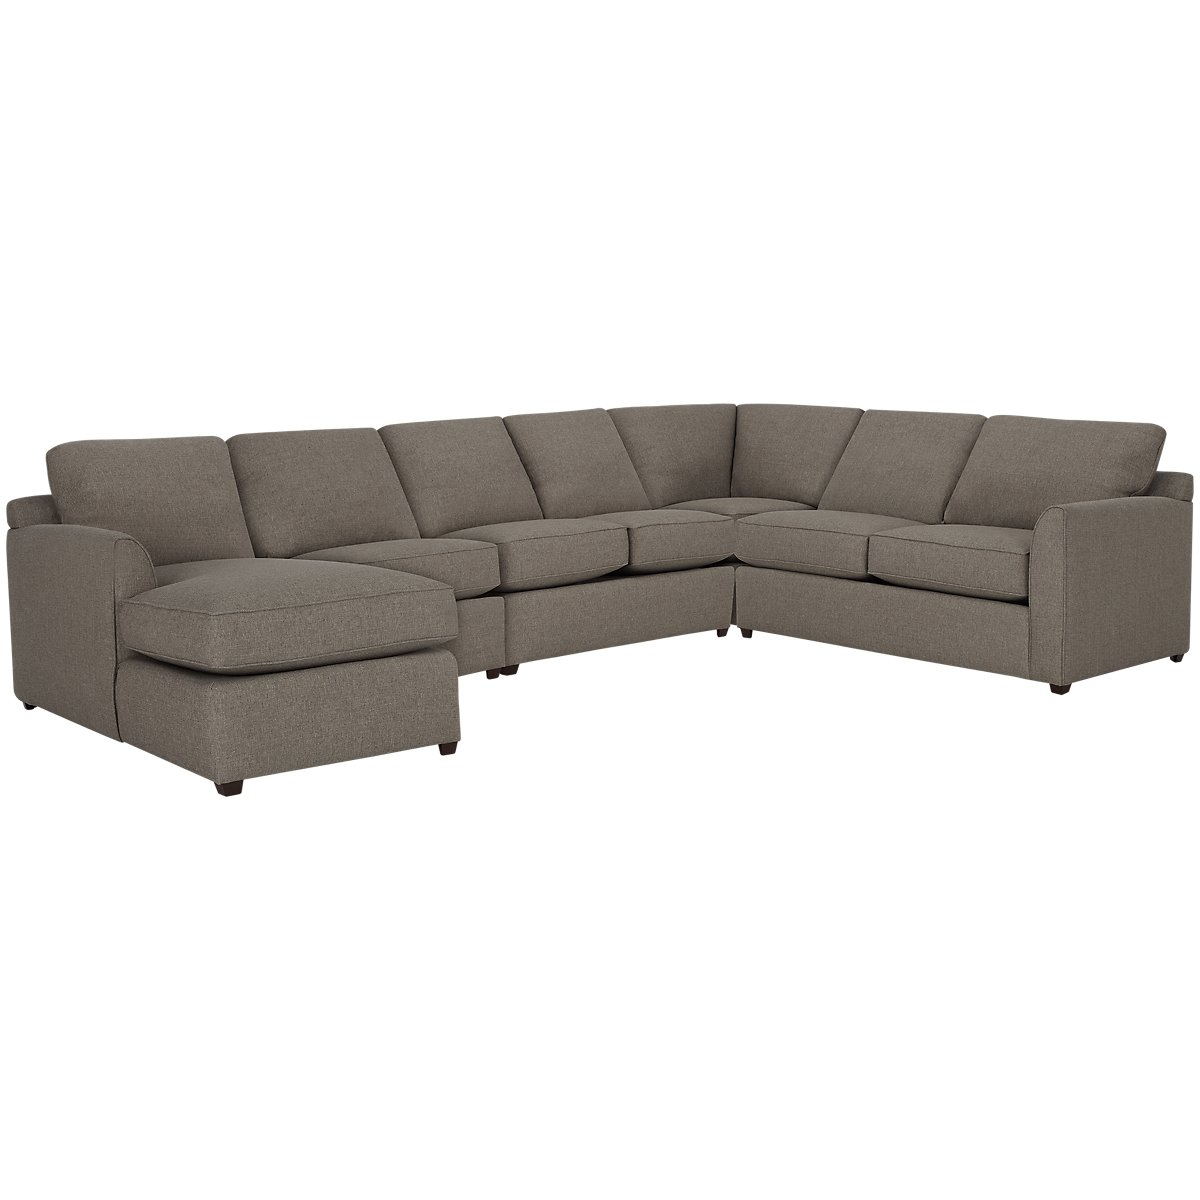 Asheville Brown Fabric Large Left Chaise Sectional